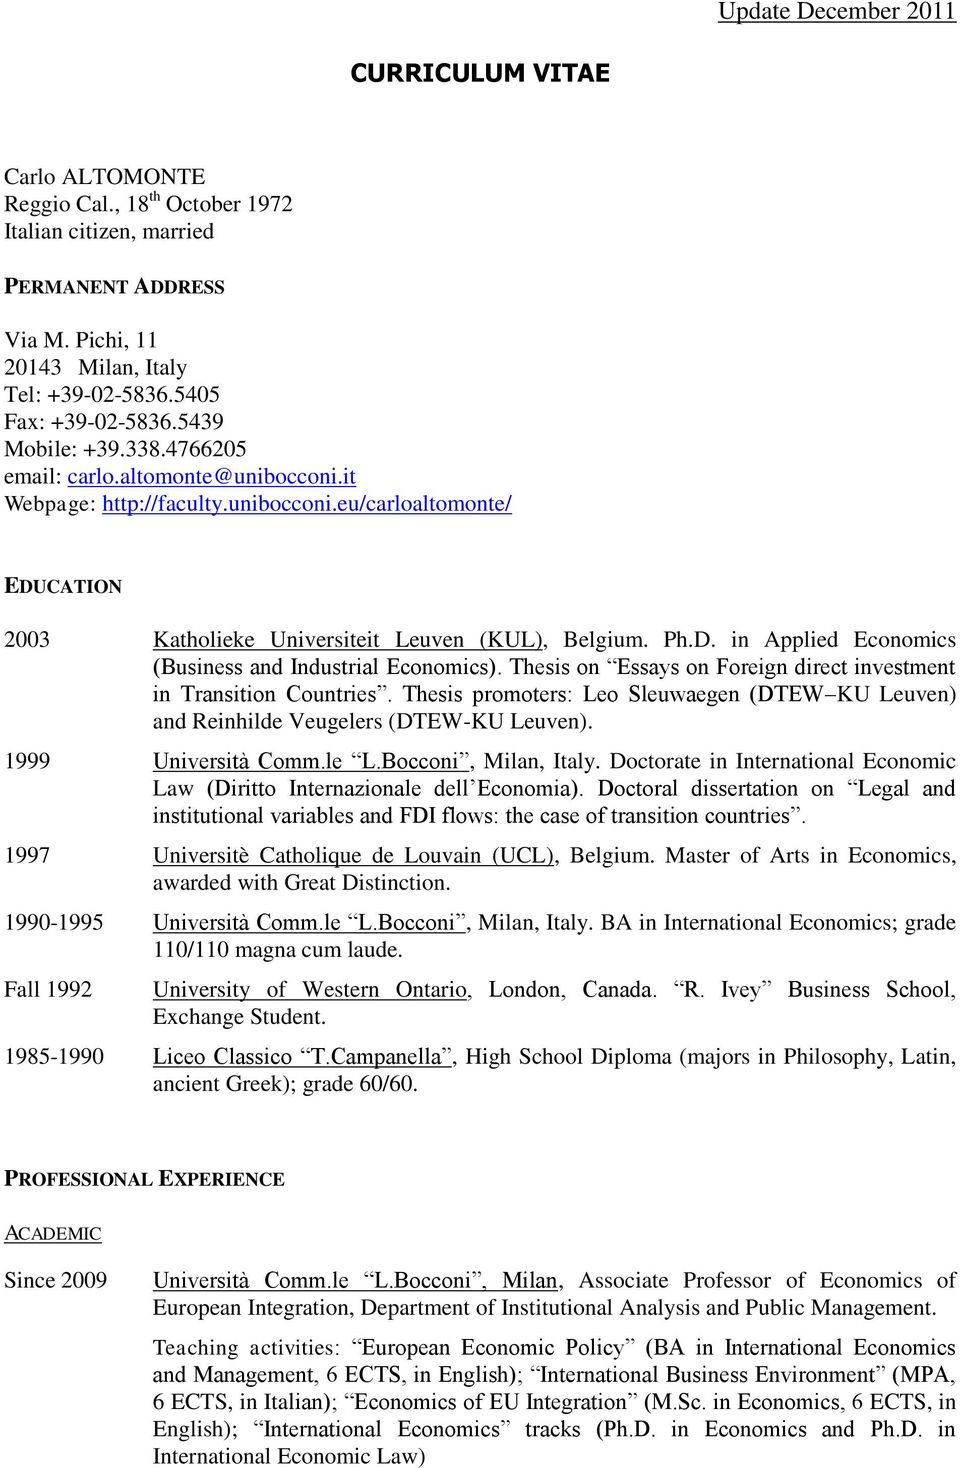 Thesis on Essays on Foreign direct investment in Transition Countries. Thesis promoters: Leo Sleuwaegen (DTEW KU Leuven) and Reinhilde Veugelers (DTEW-KU Leuven). 1999 Università Comm.le L.